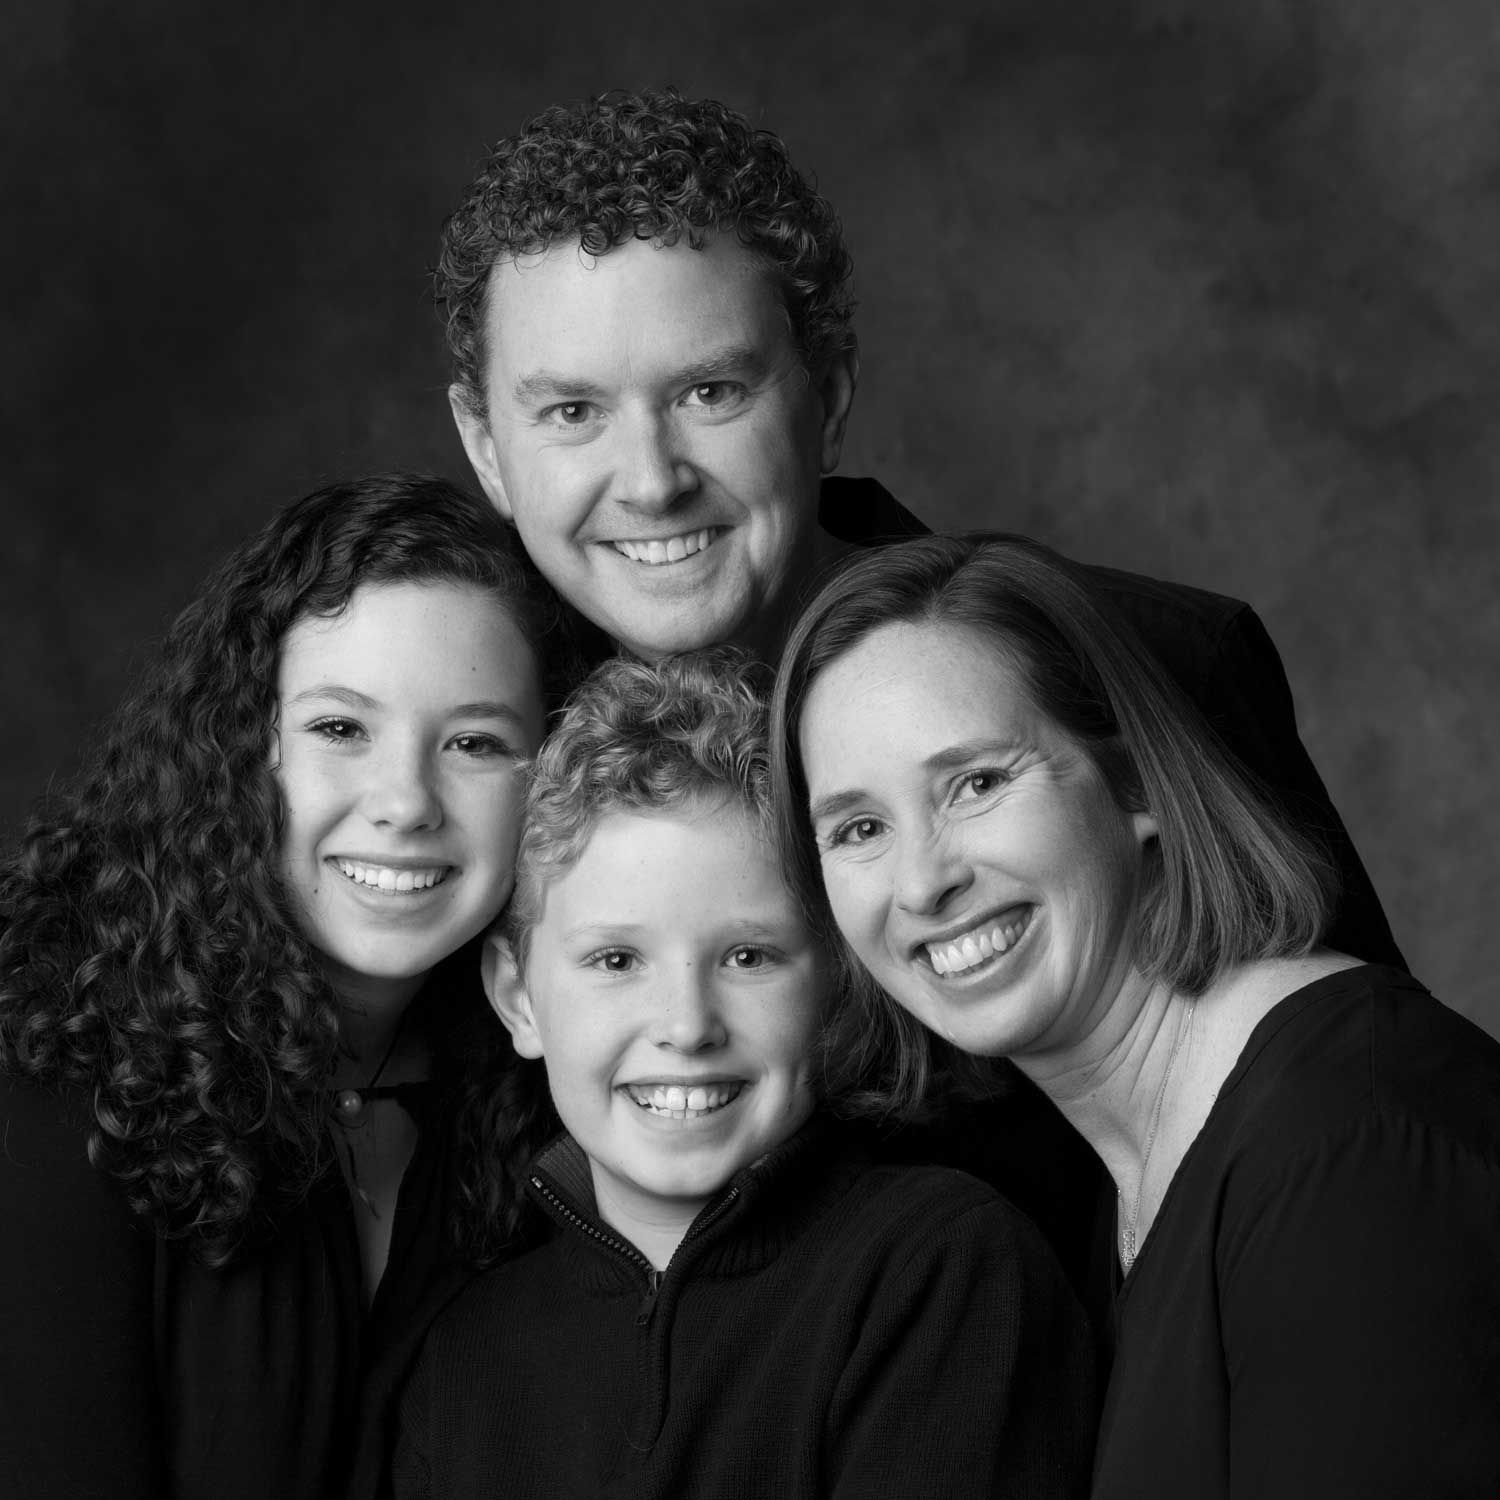 Black and white family portrait. Photograph by Donald Chambers.